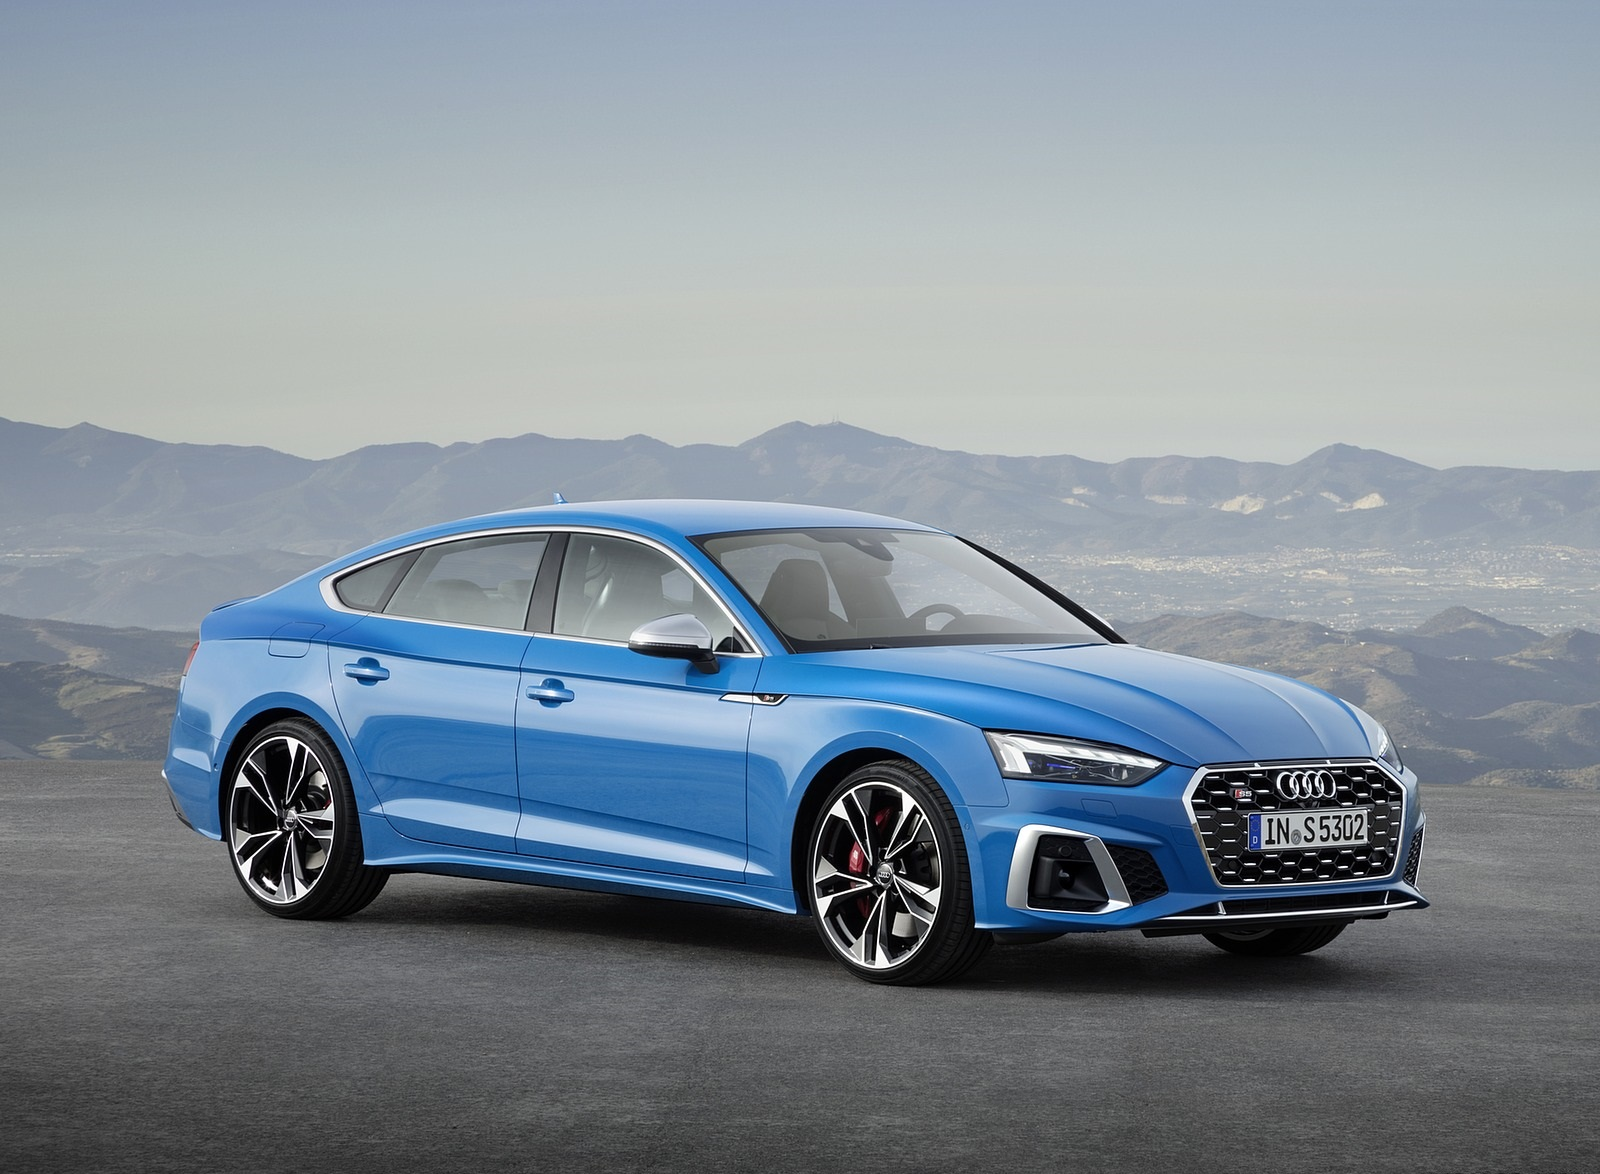 2020 Audi S5 Sportback TDI (Color: Turbo Blue) Front Three-Quarter Wallpapers (6)